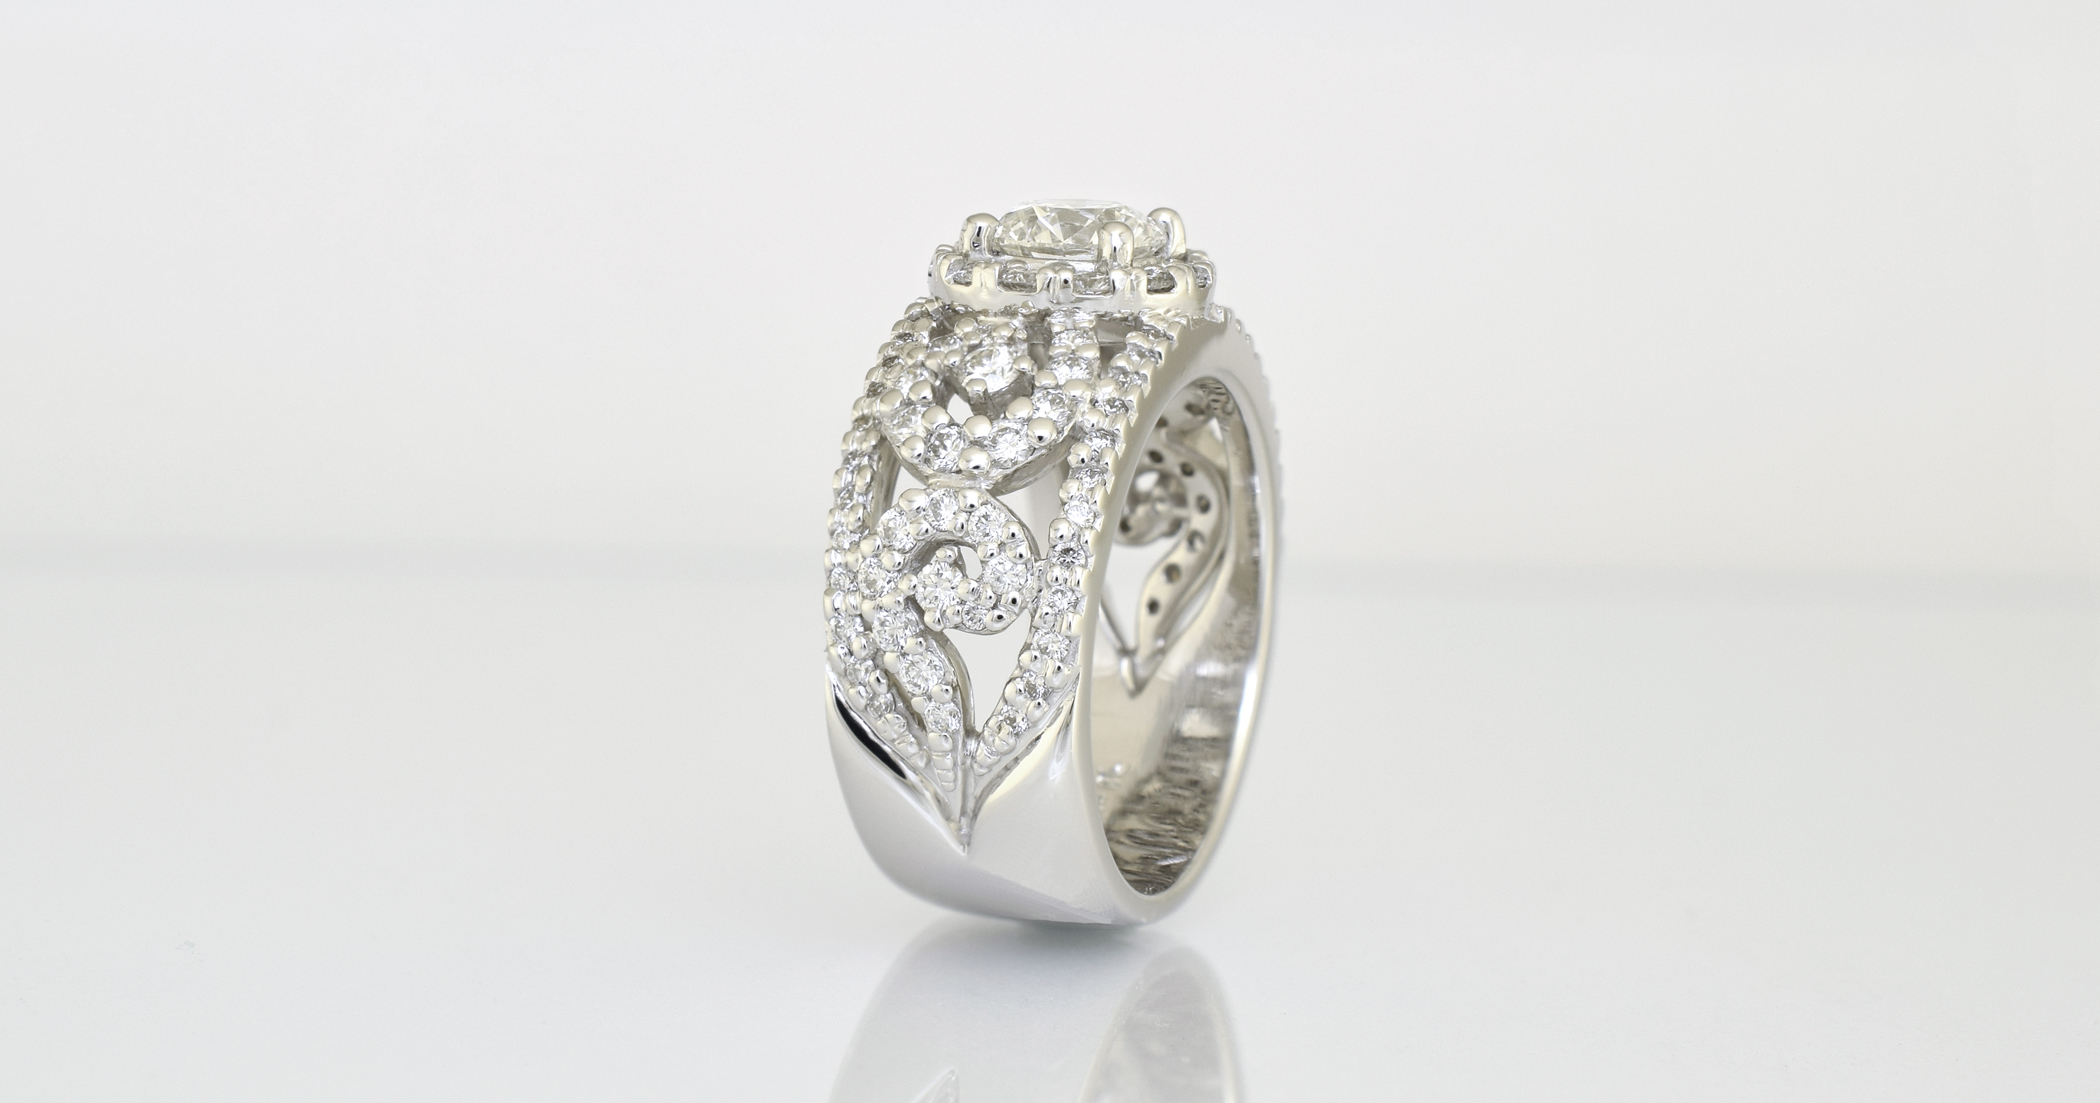 The pendant was made to match the side feature of this ring.